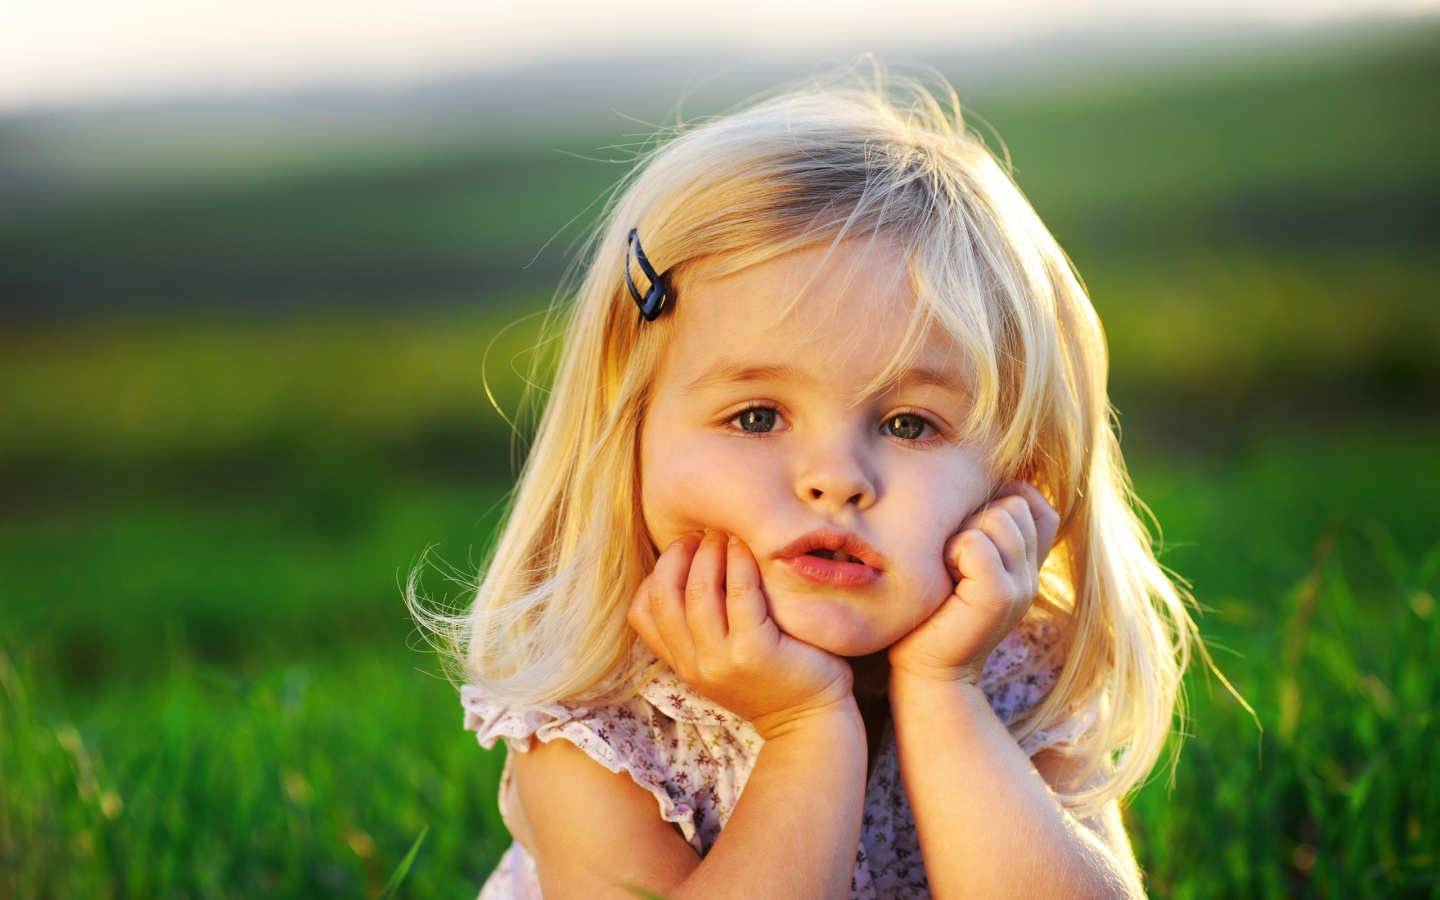 Cute Little Baby Girl In 1440×900 Resolution 1920x1080px Desktop Wallpaper